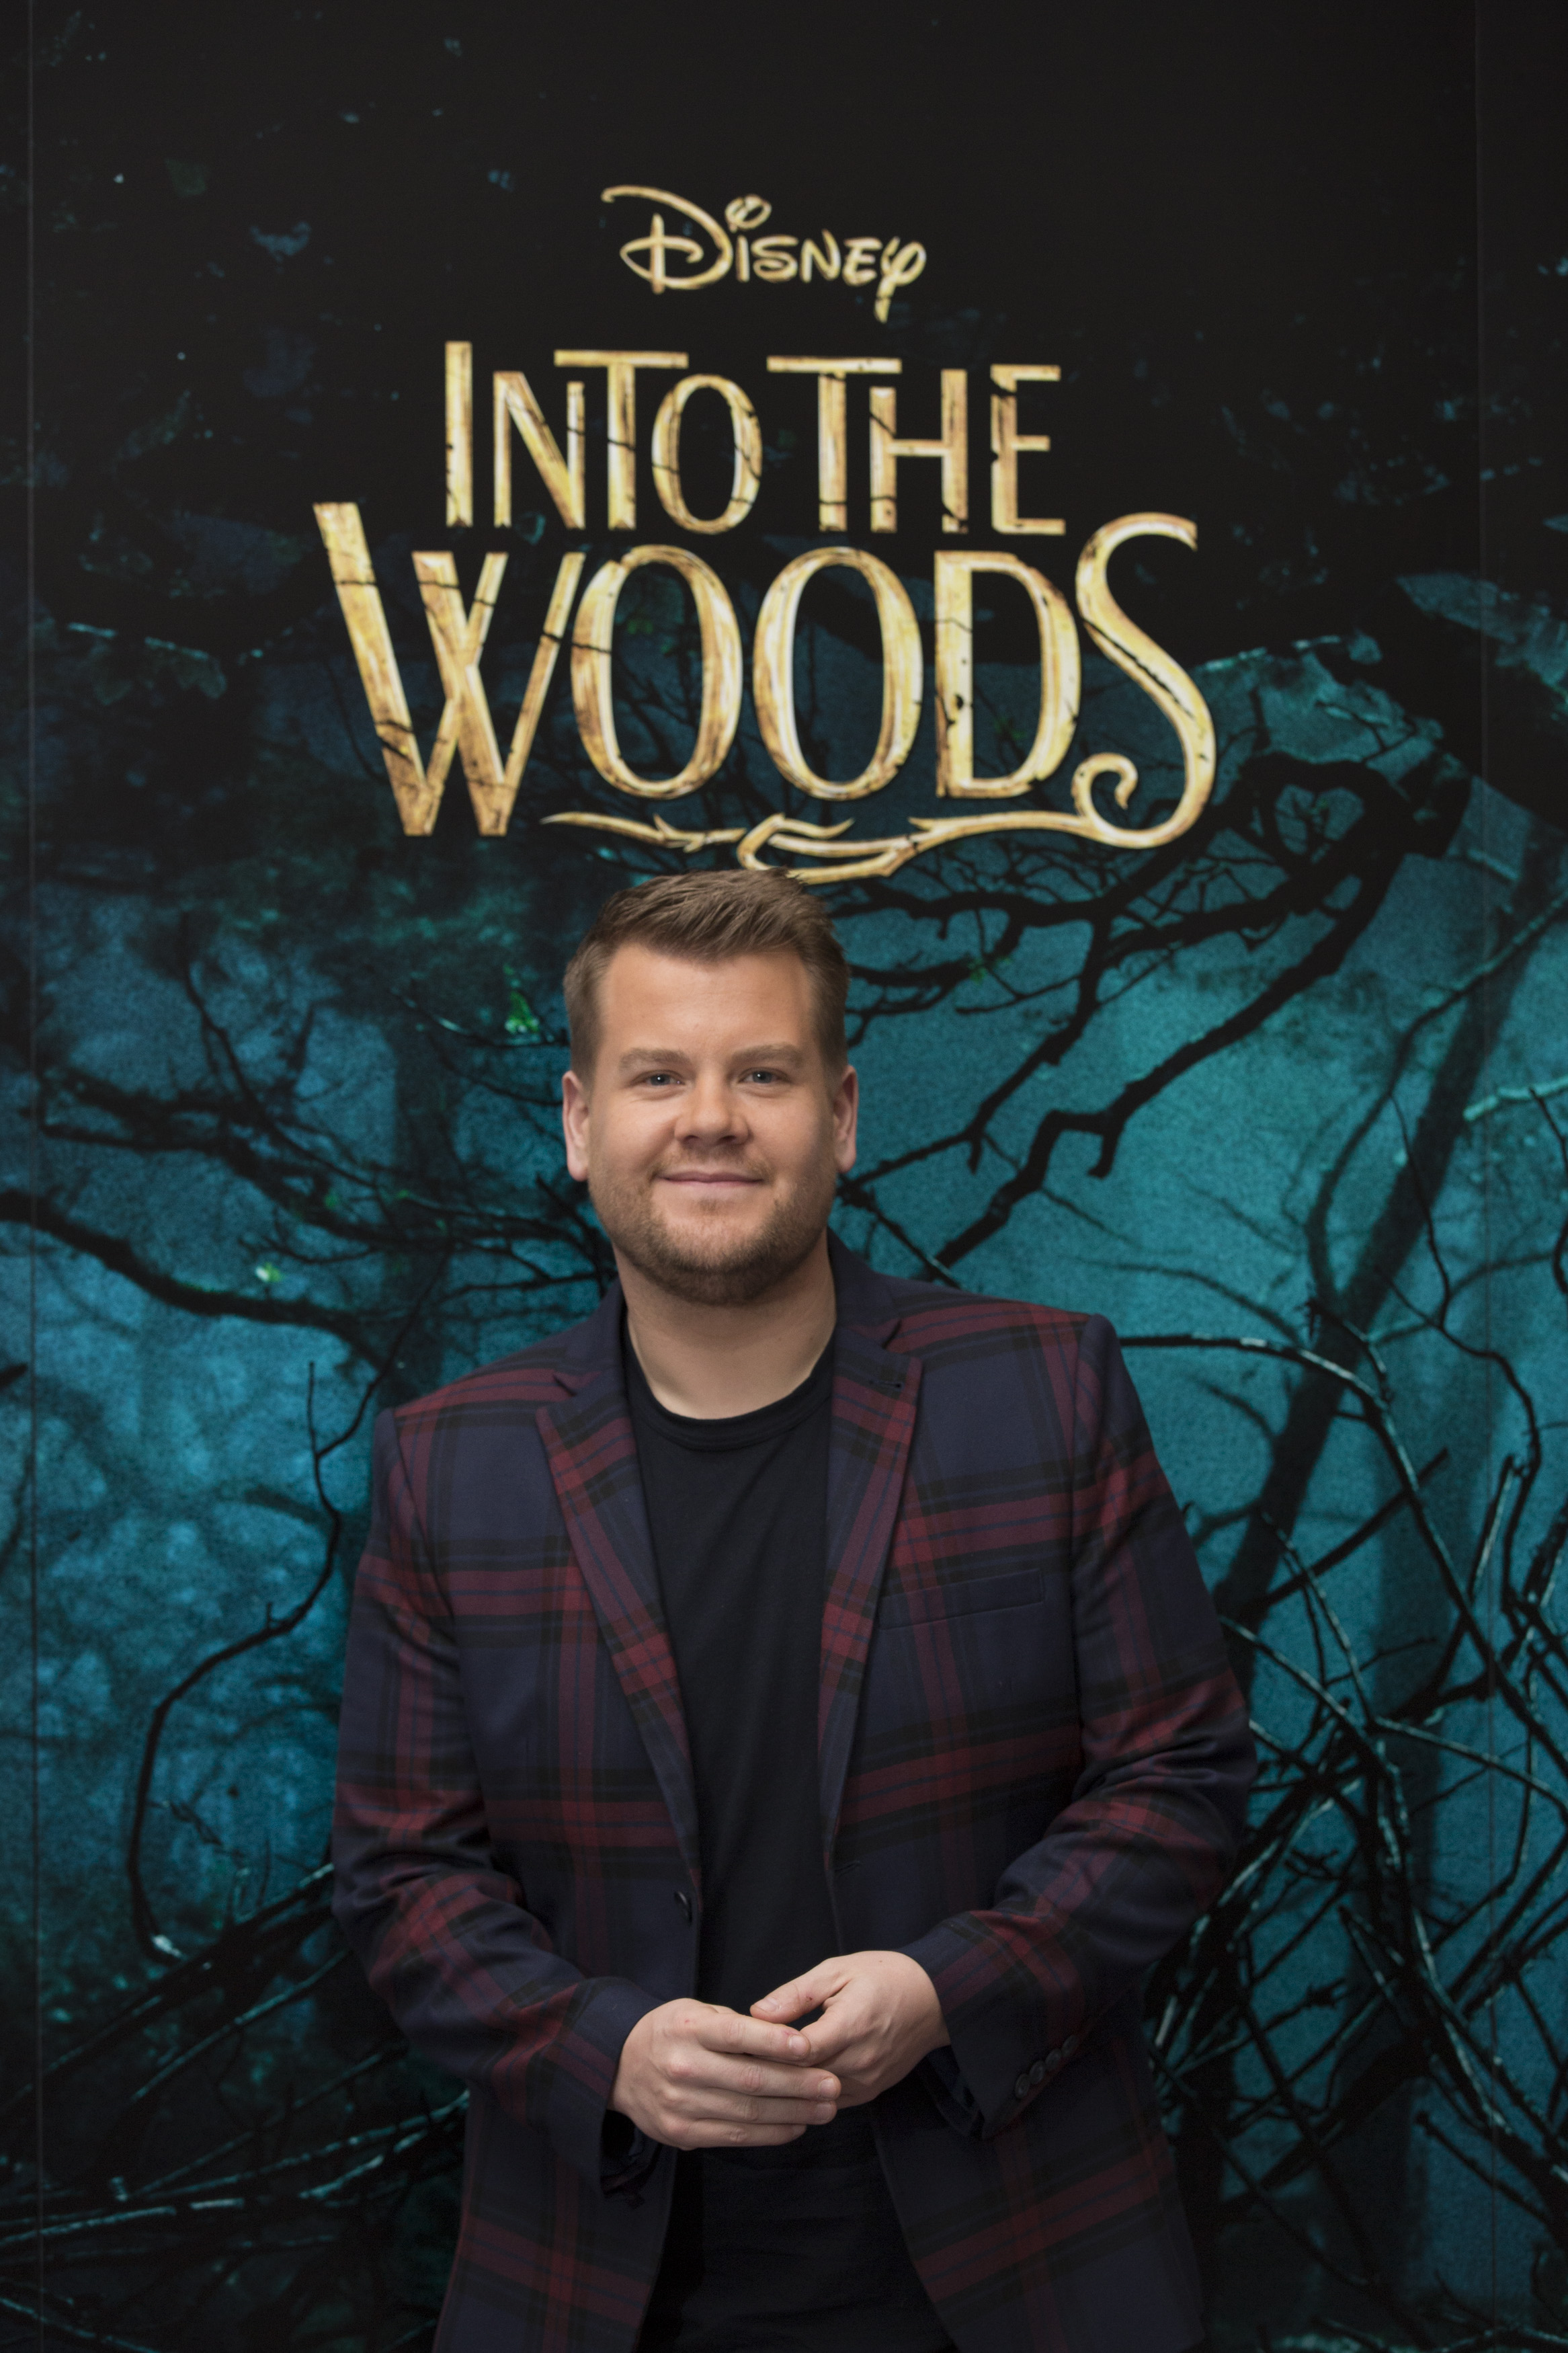 Rob marshall anna kendrick amp james corden participate in into the